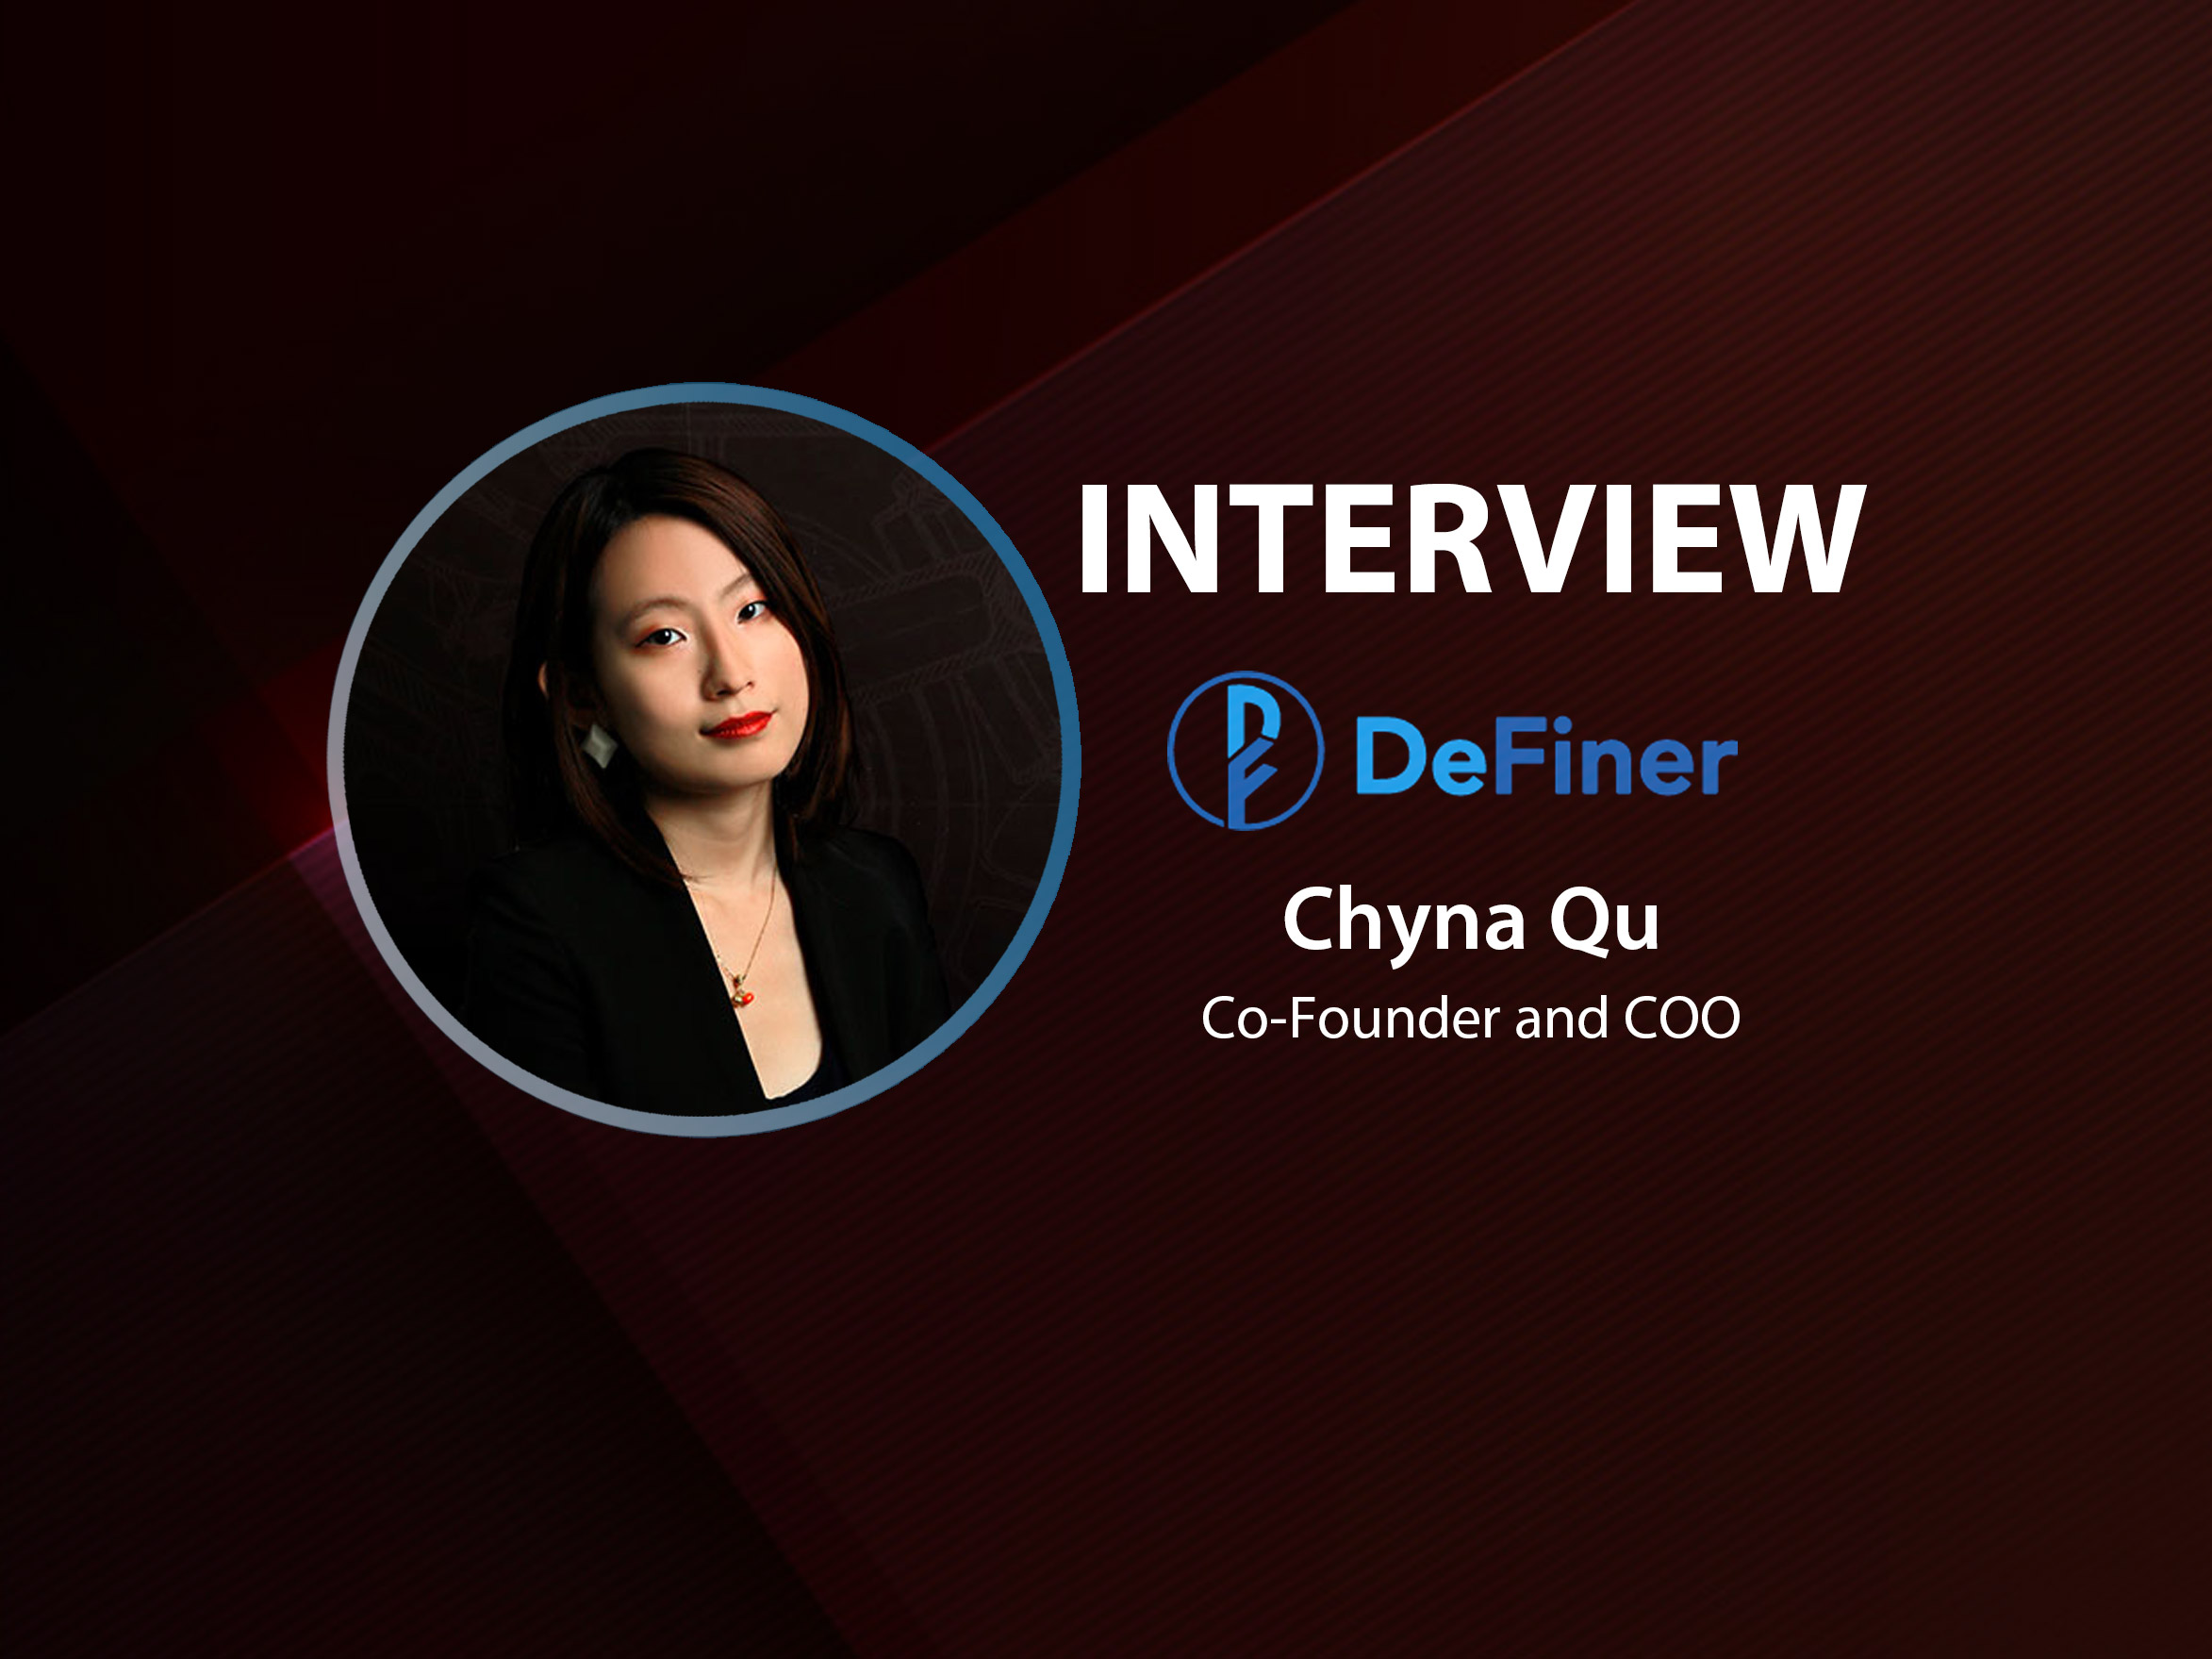 GlobalFintechSeries Interview with Chyna Qu, Co-Founder and COO at DeFiner